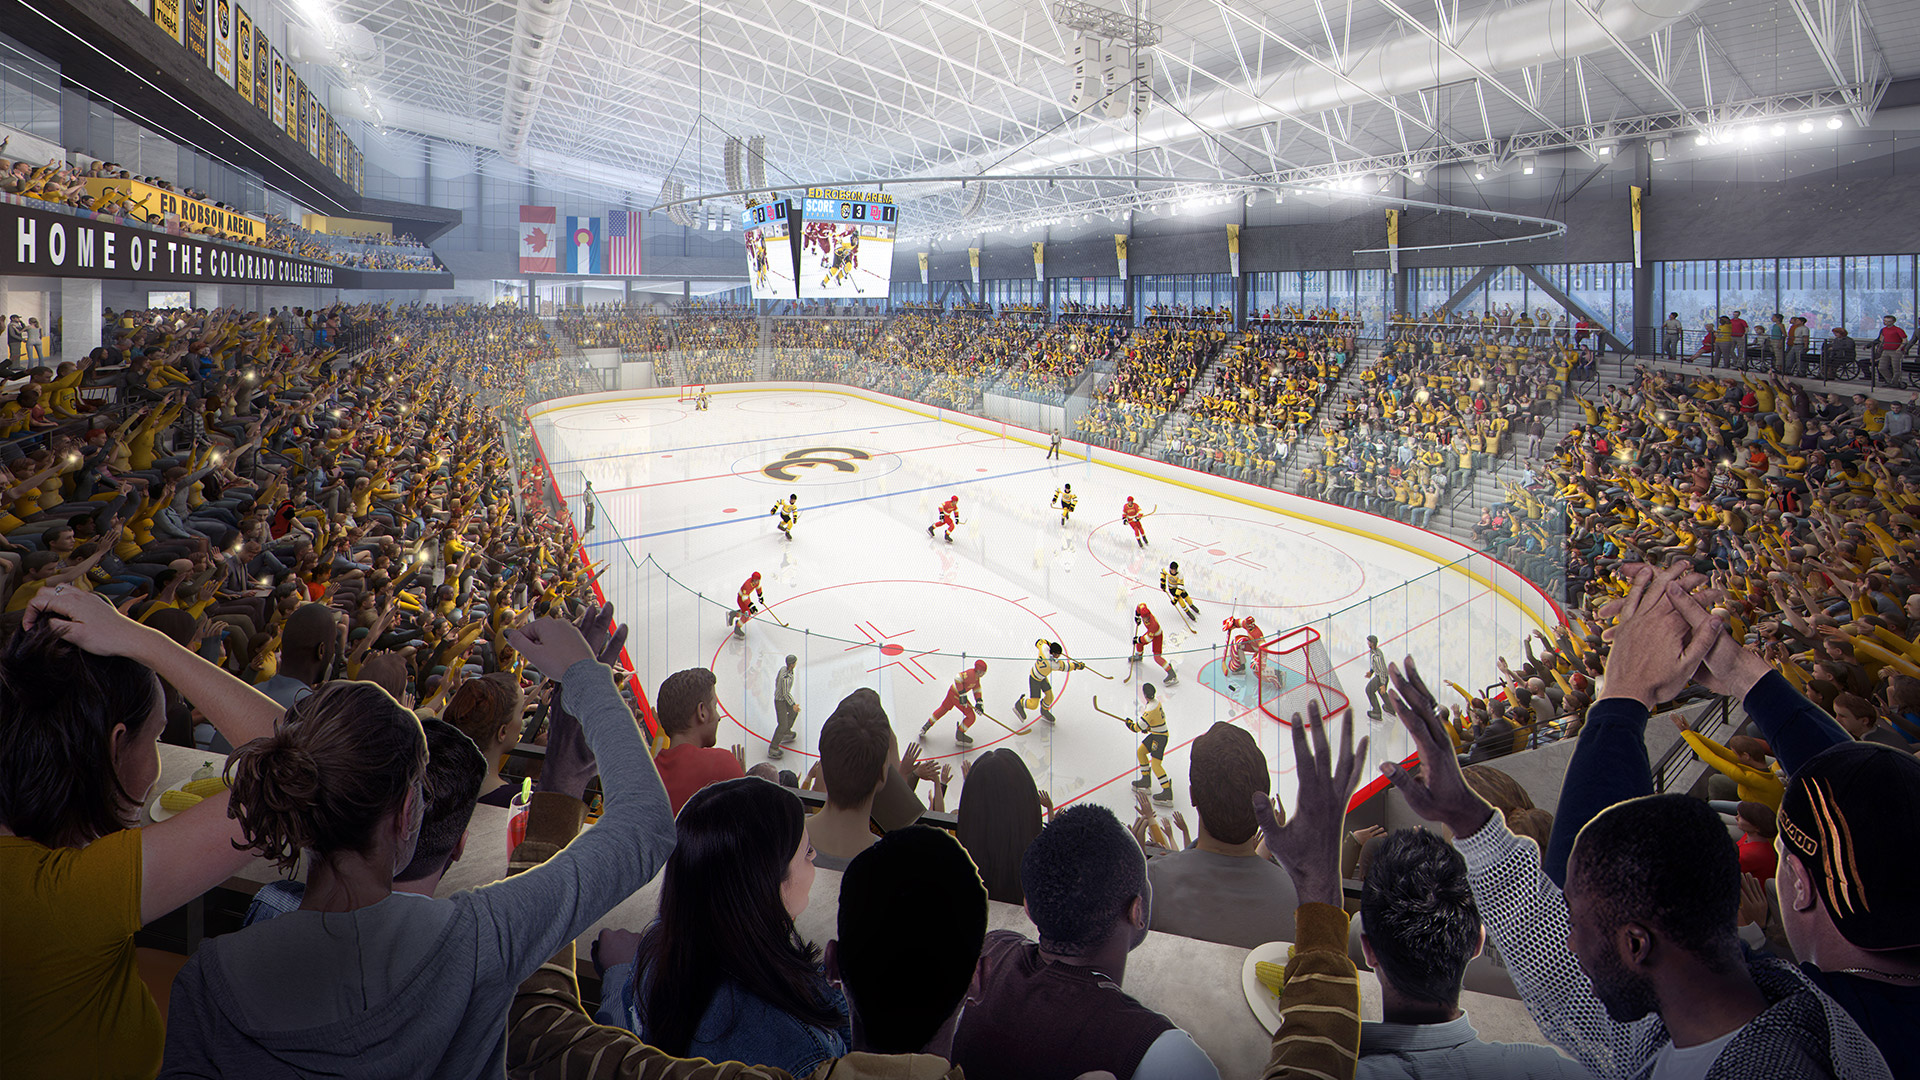 JLG has been named the Best Ice Hockey Arena Architects